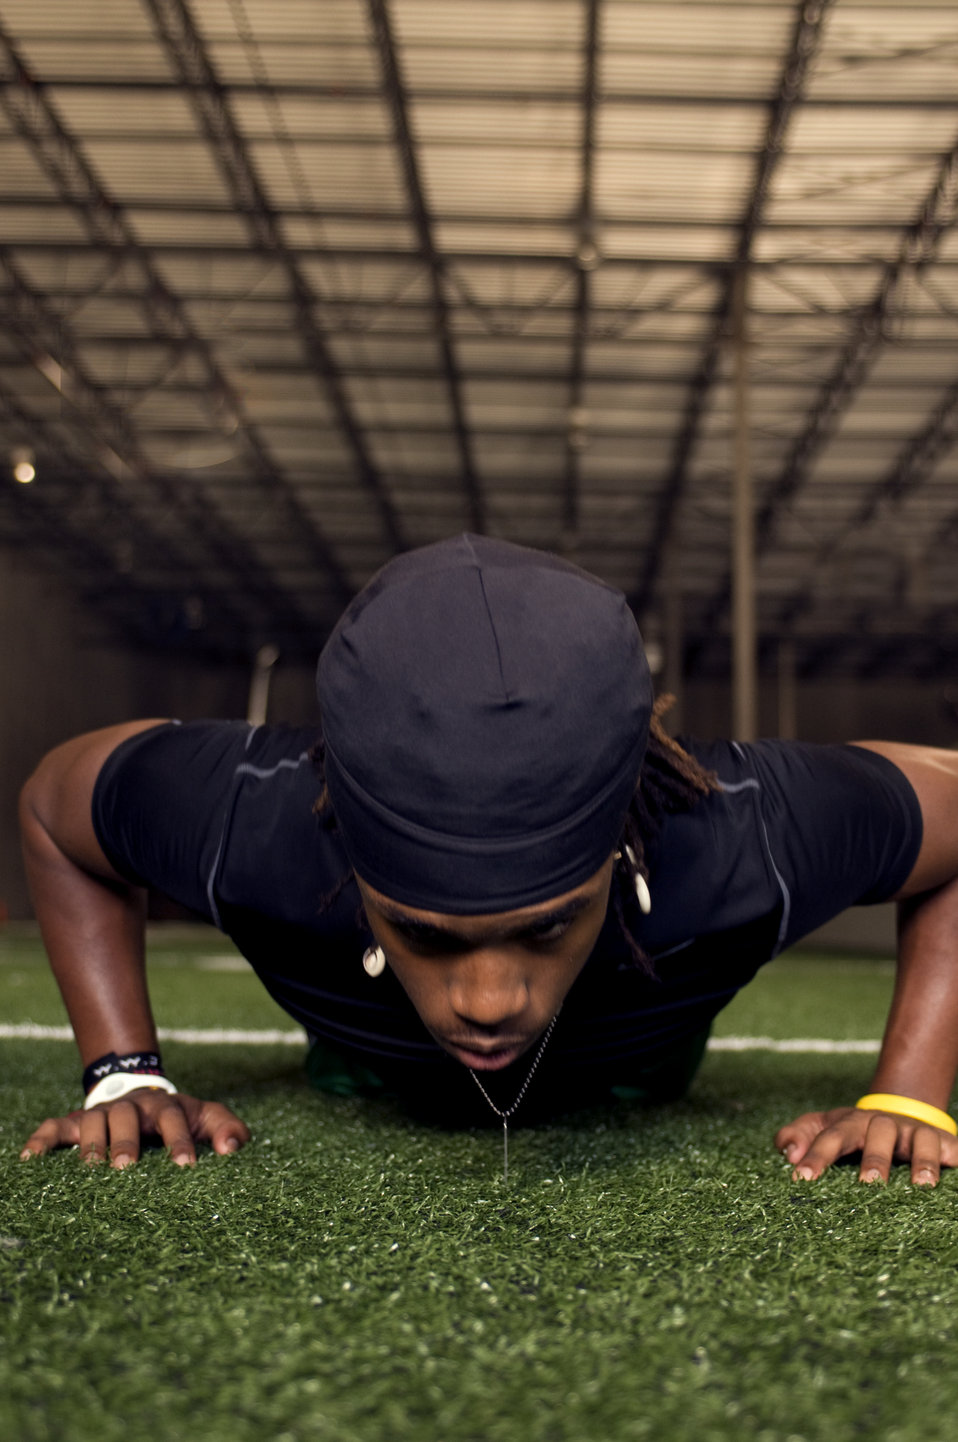 This young man was performing push-ups on an indoor practice field's artificial grass surface. At this point of his activity, he was at the